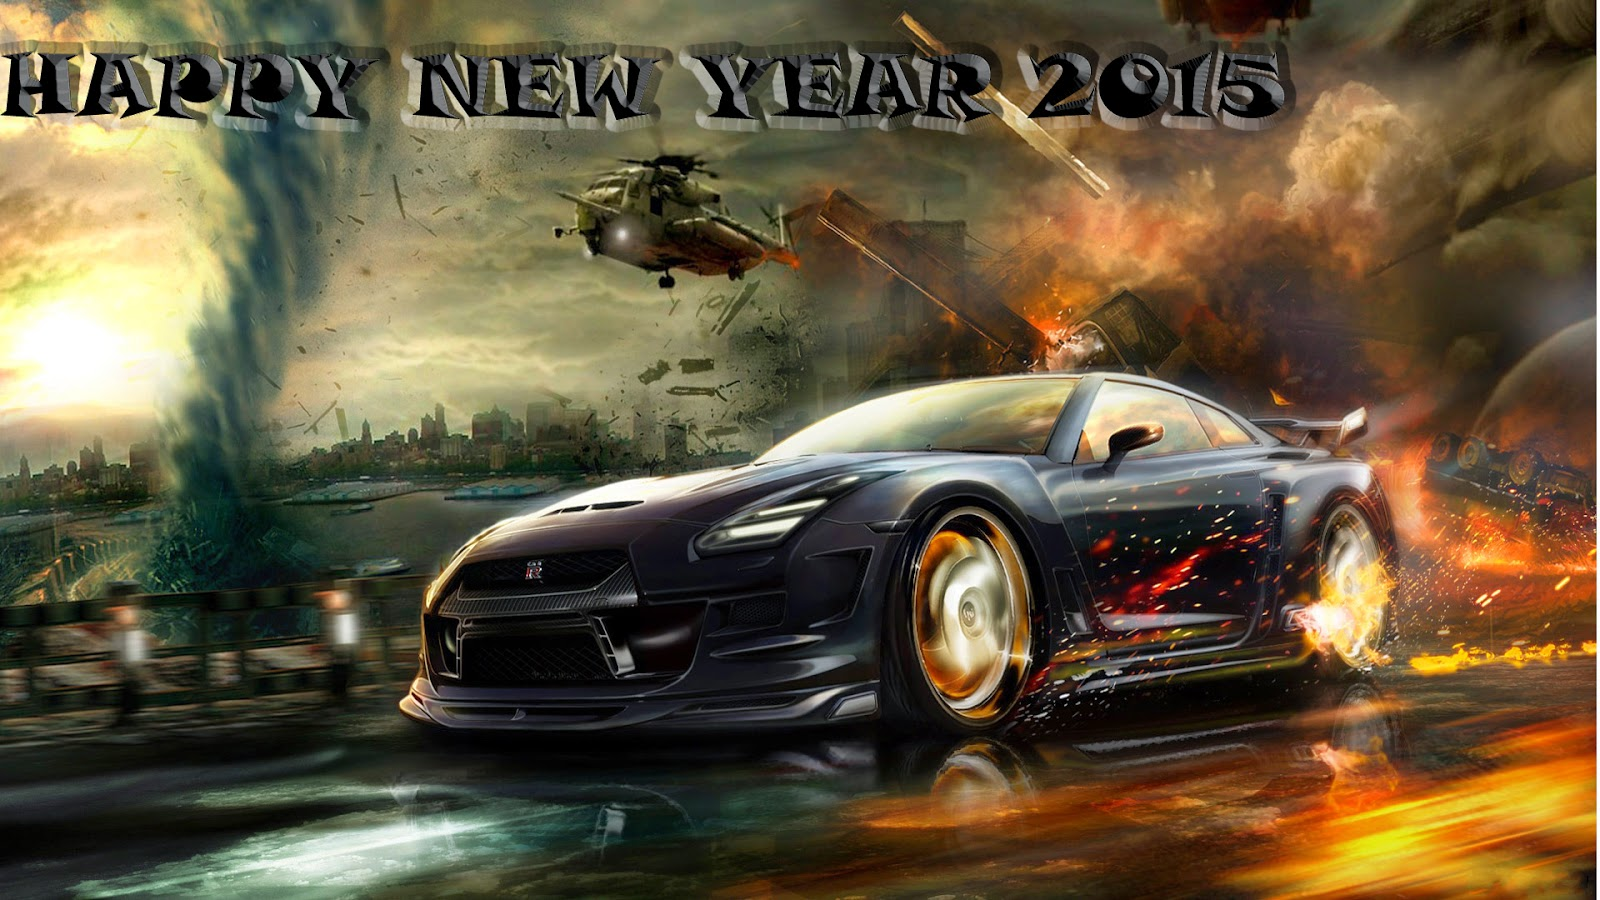 Happy New Year 2015 Car Wallpapers For HD